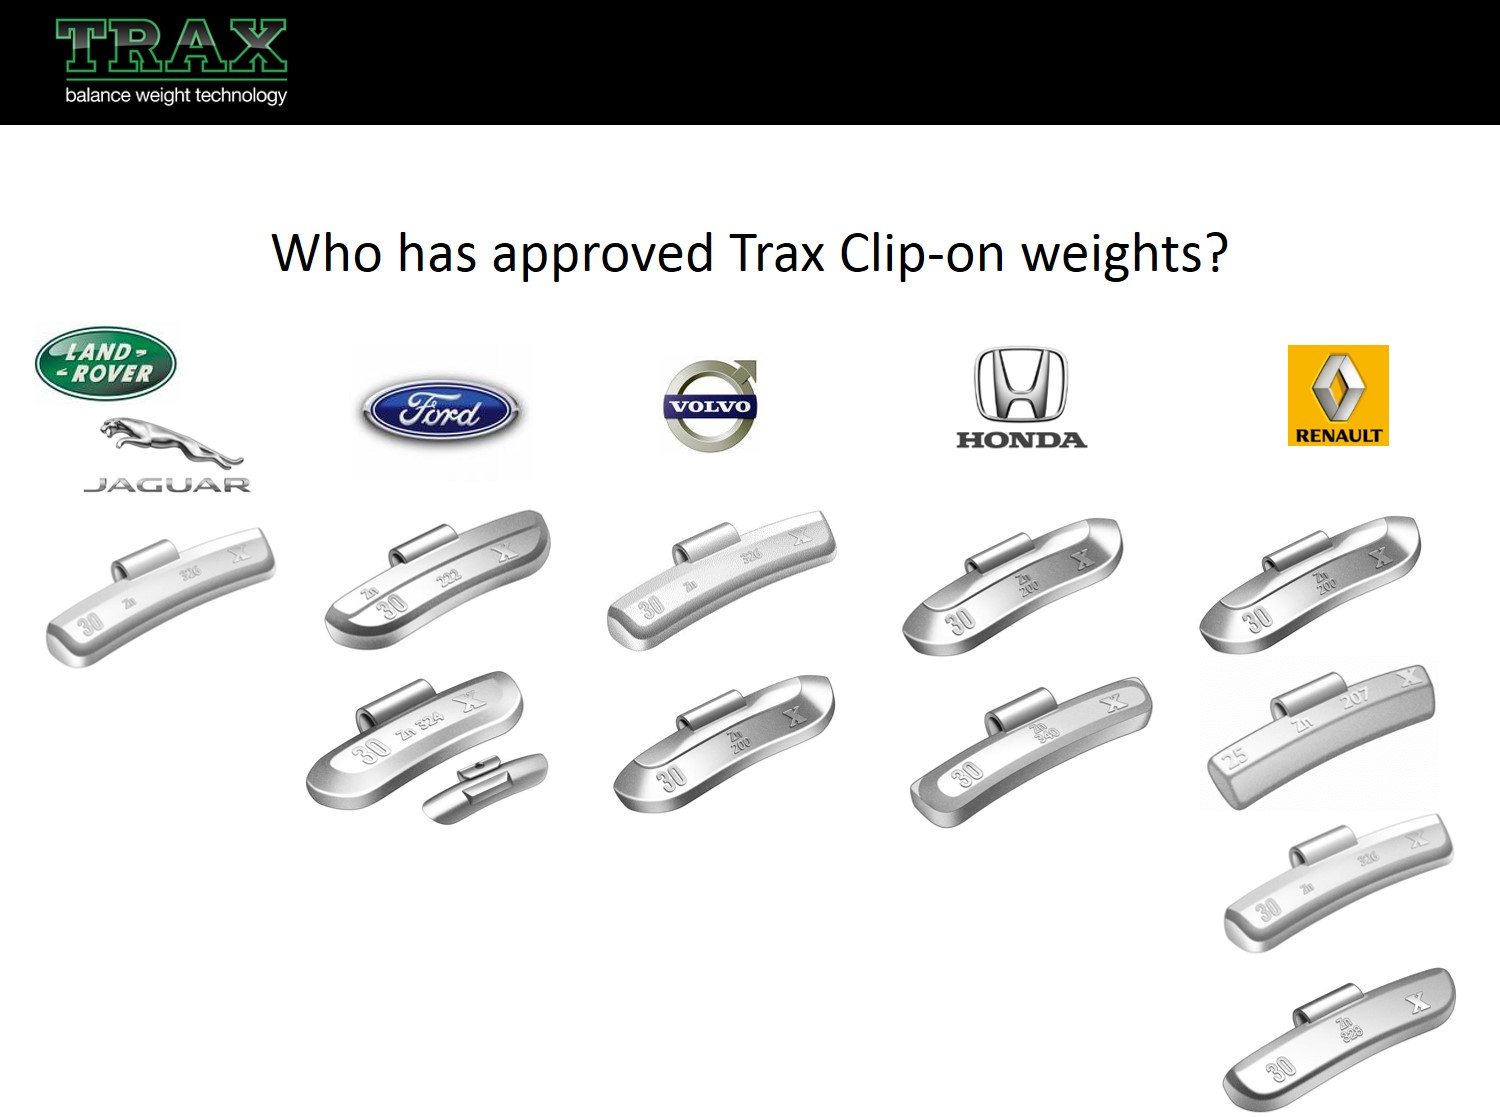 Who has Approved Trax Wheel Weights?